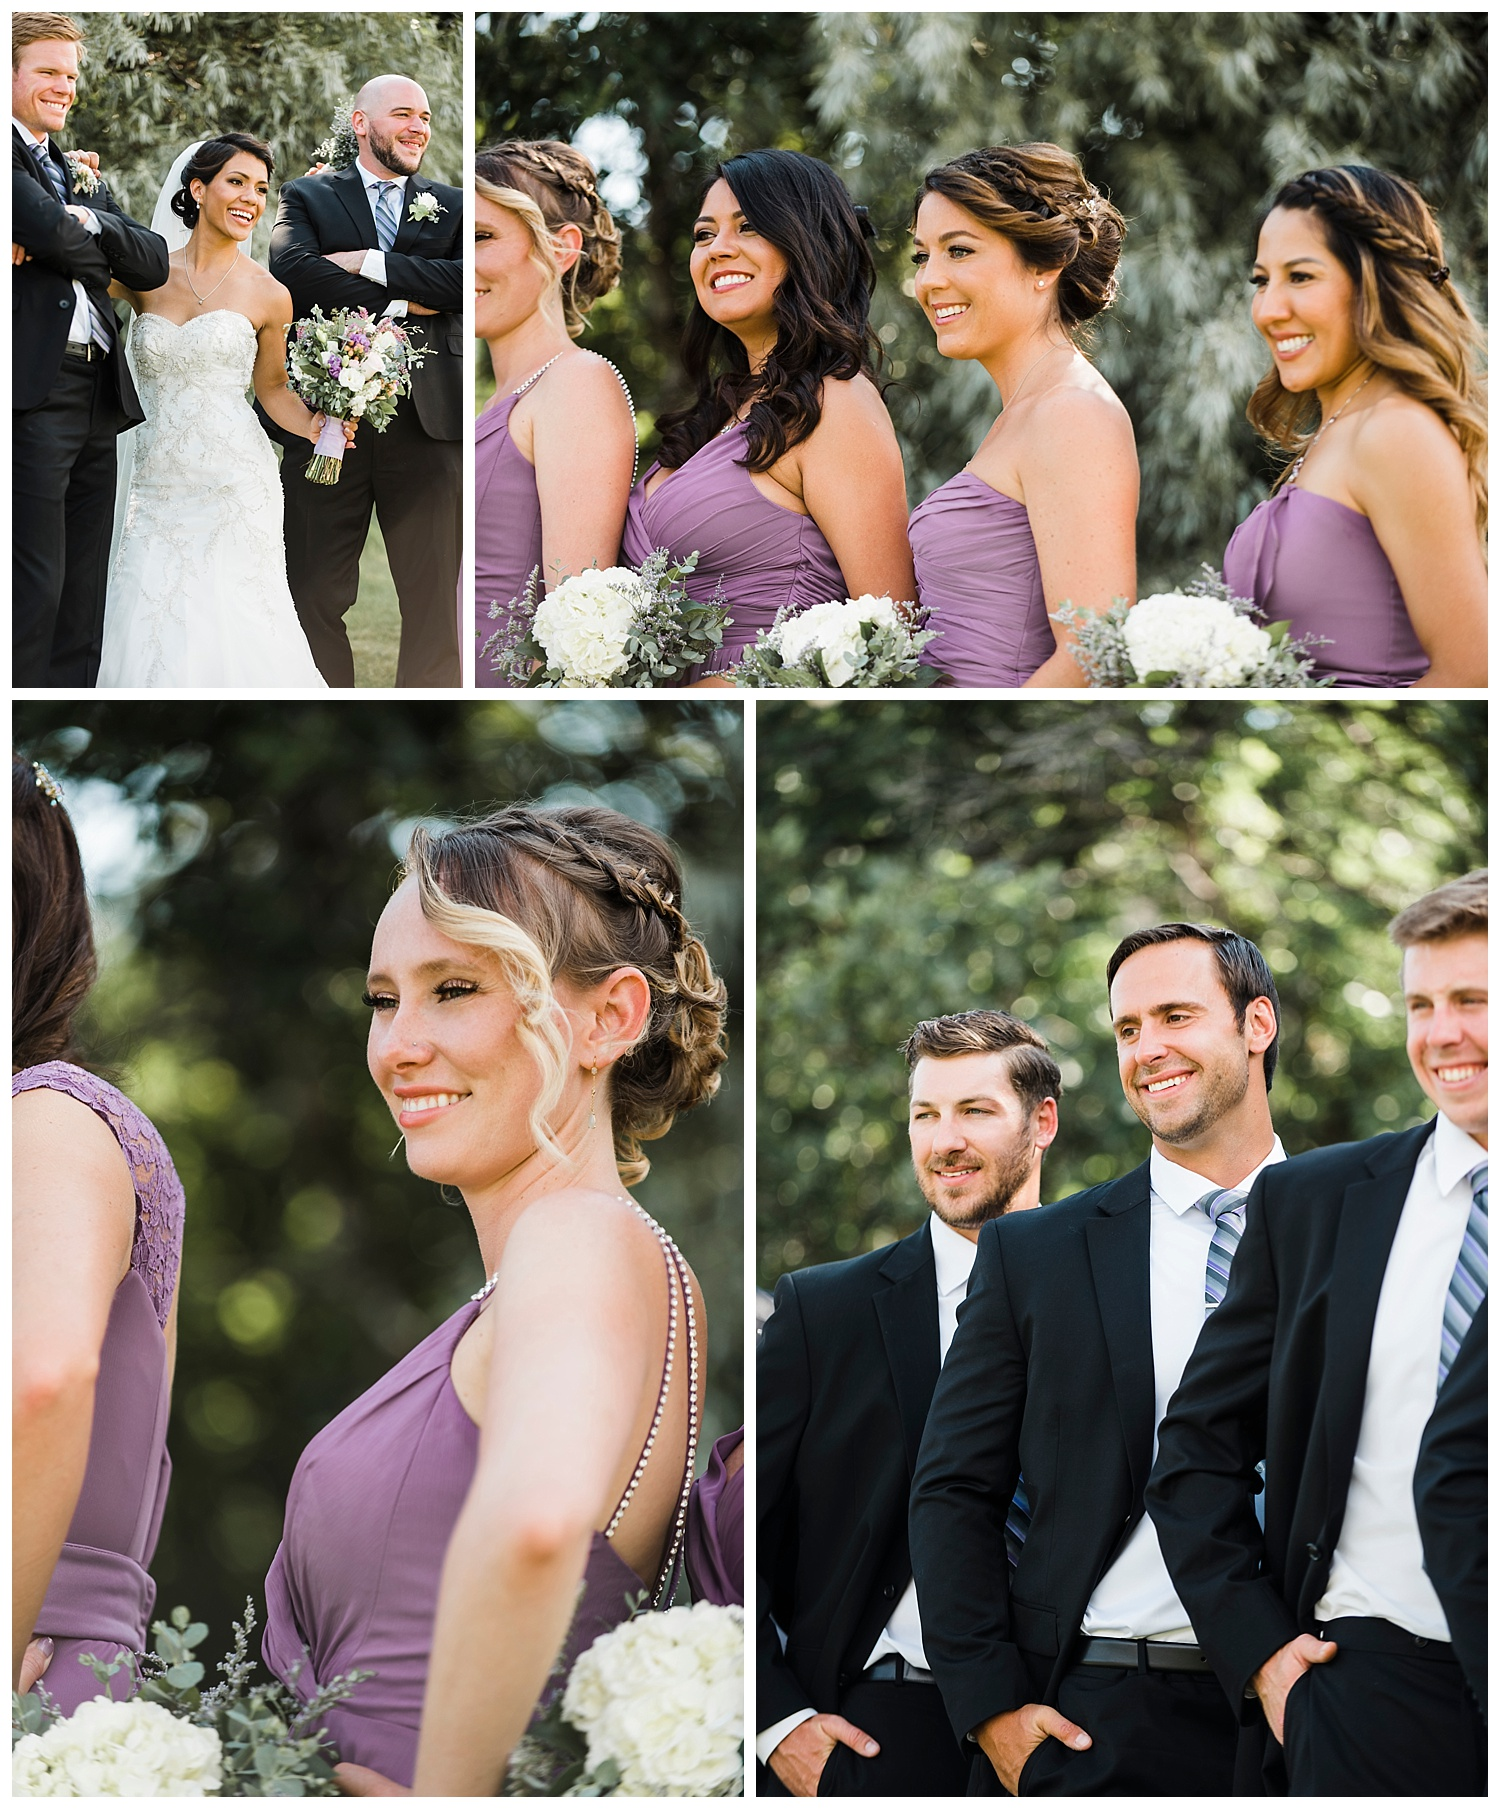 Arrowhead_Golf_Course_Wedding_Littleton_Colorado_Apollo_Fields_145.jpg